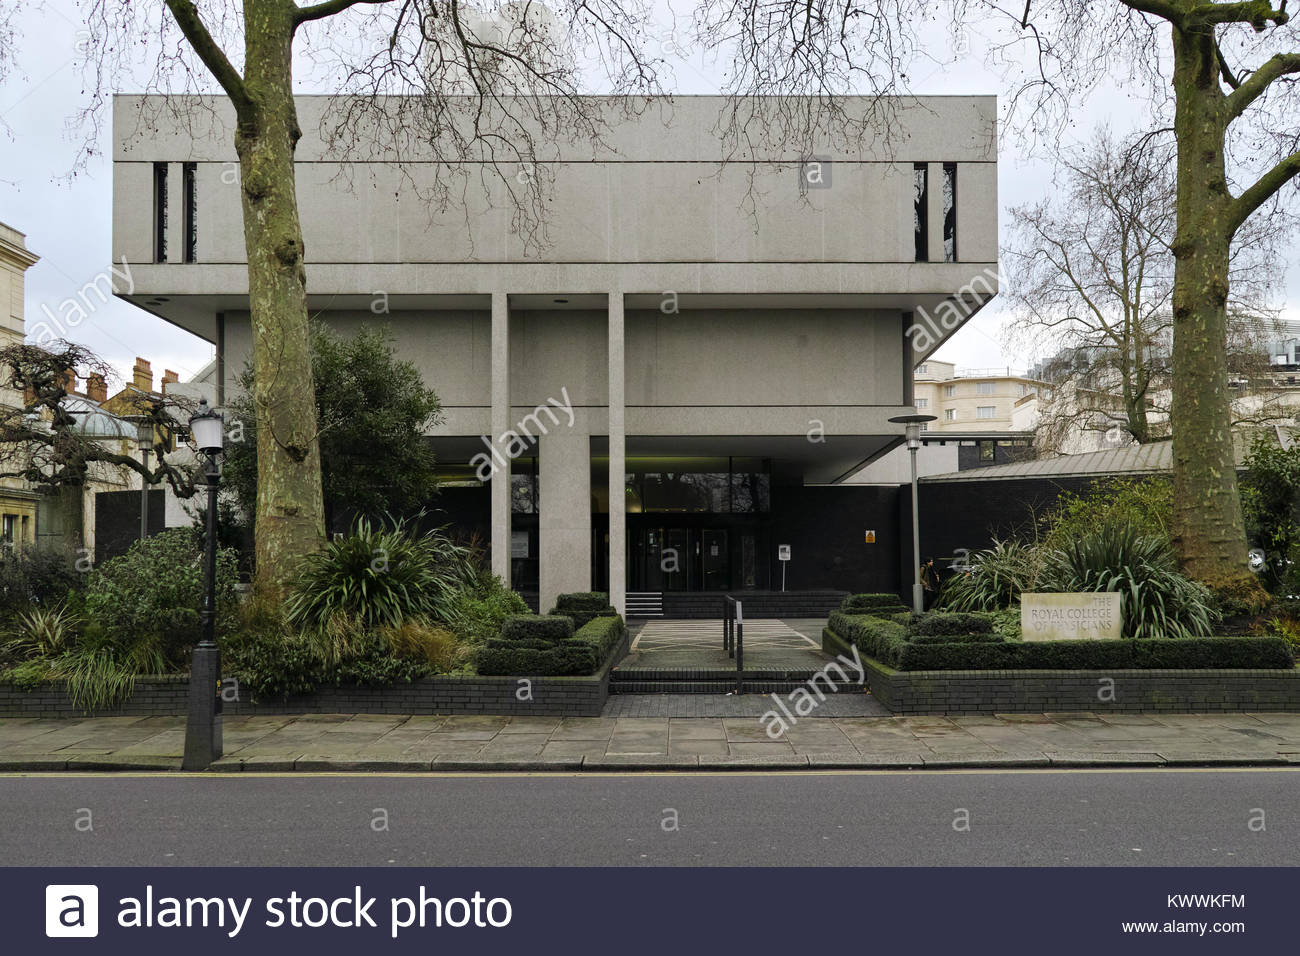 Royal College of Physicians building, by architect Sir Denis Lasdun: London. - Stock Image